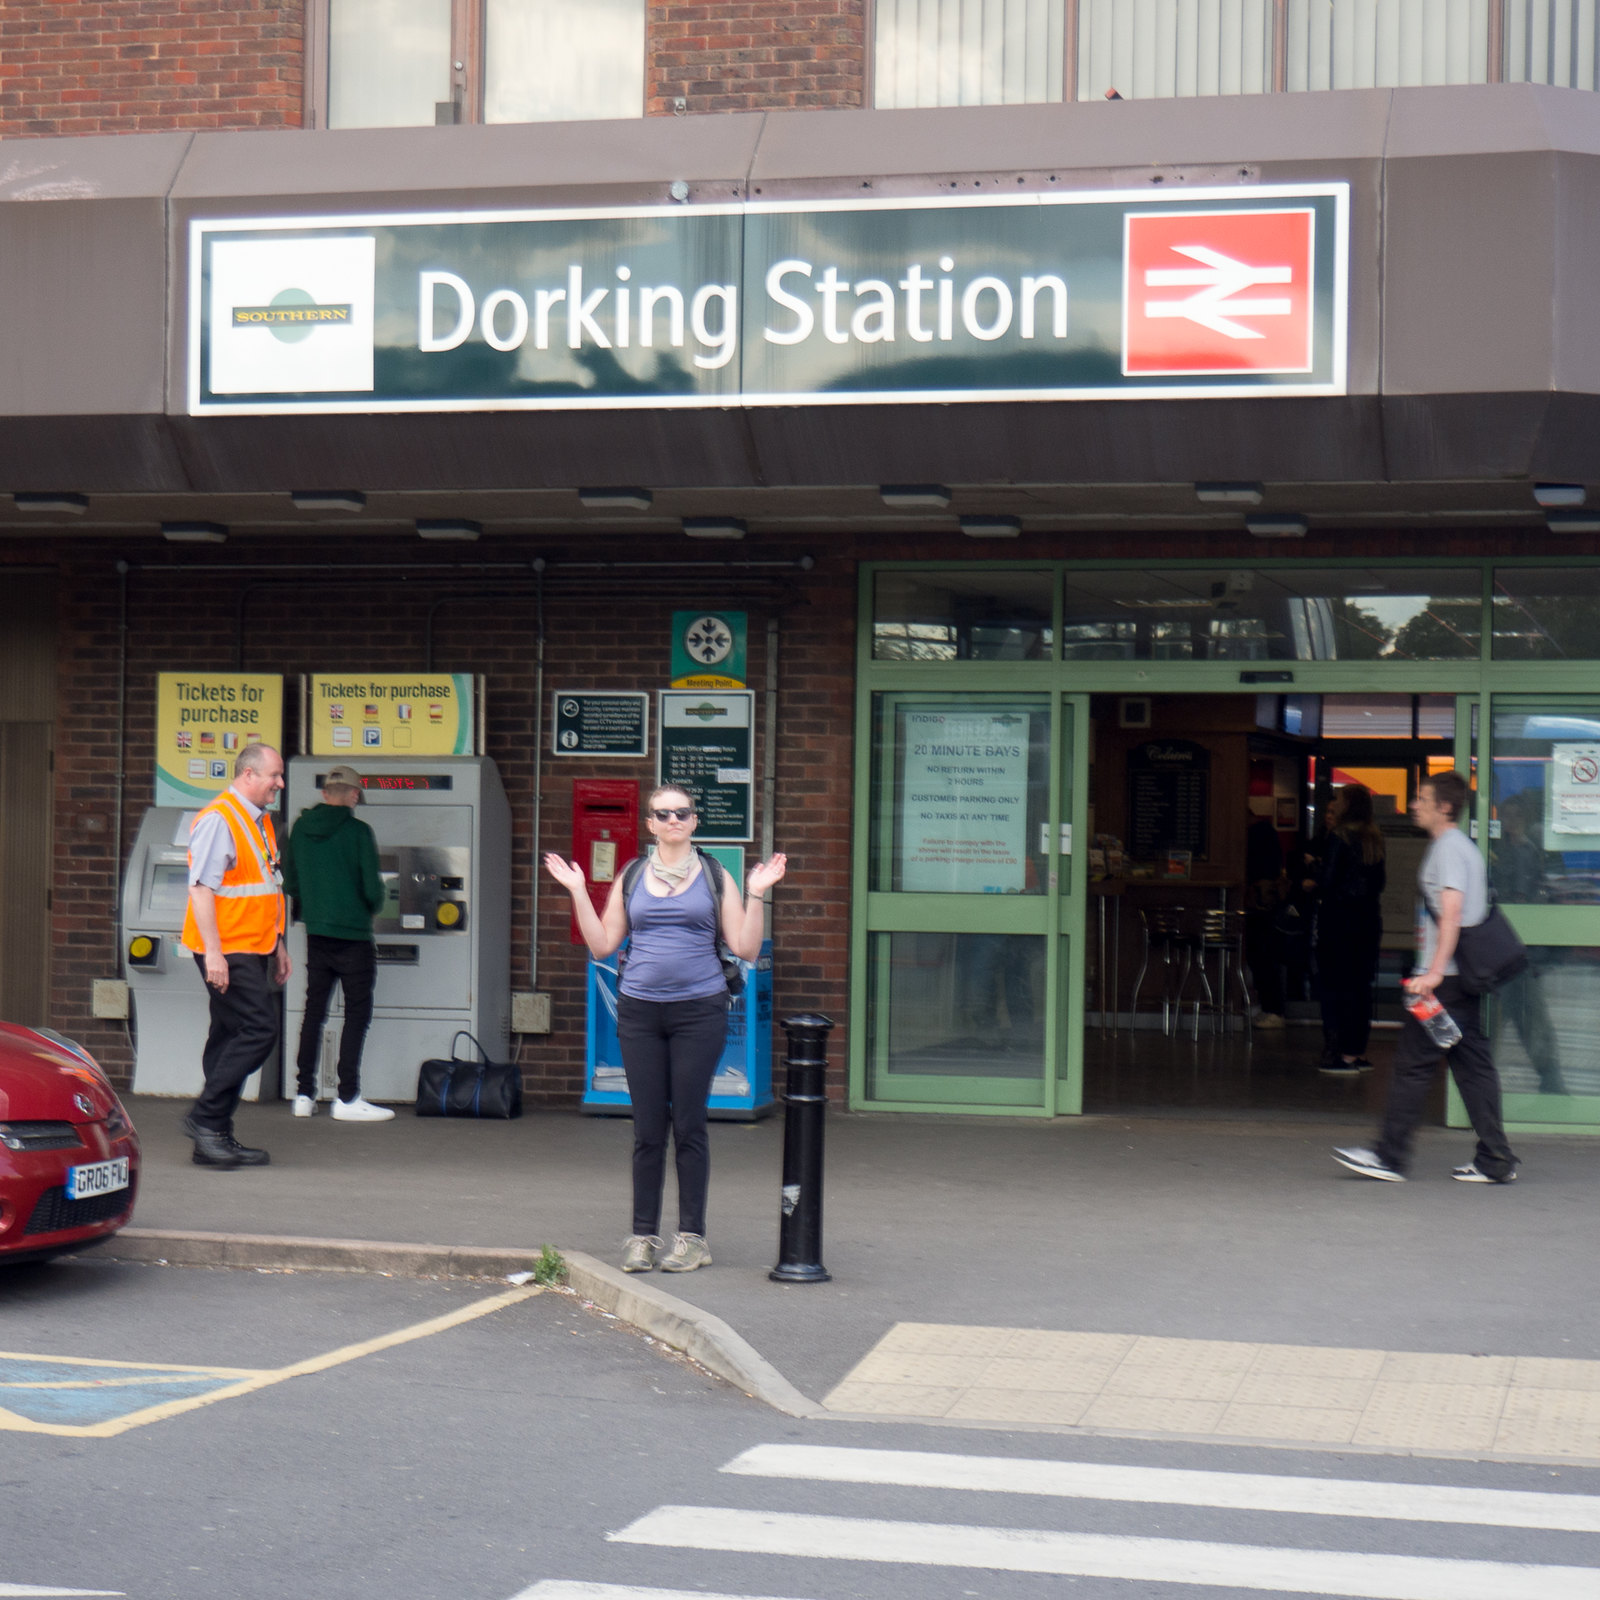 "Dorking Station! We walked the Mole Gap Trail from Leatherhead to Dorking, with a detour for Box Hill. www.visitdorking.com/explore/walks-and-trails/mole-gap-trail/"" rel=""nofollow www.visitdorking.com/explore/walks-and-trails/mole-gap-tr... www.walkingclub.org.uk/book_1/walk_49/"" rel=""nofollow www.walkingclub.org.uk/book_1/walk_49/"